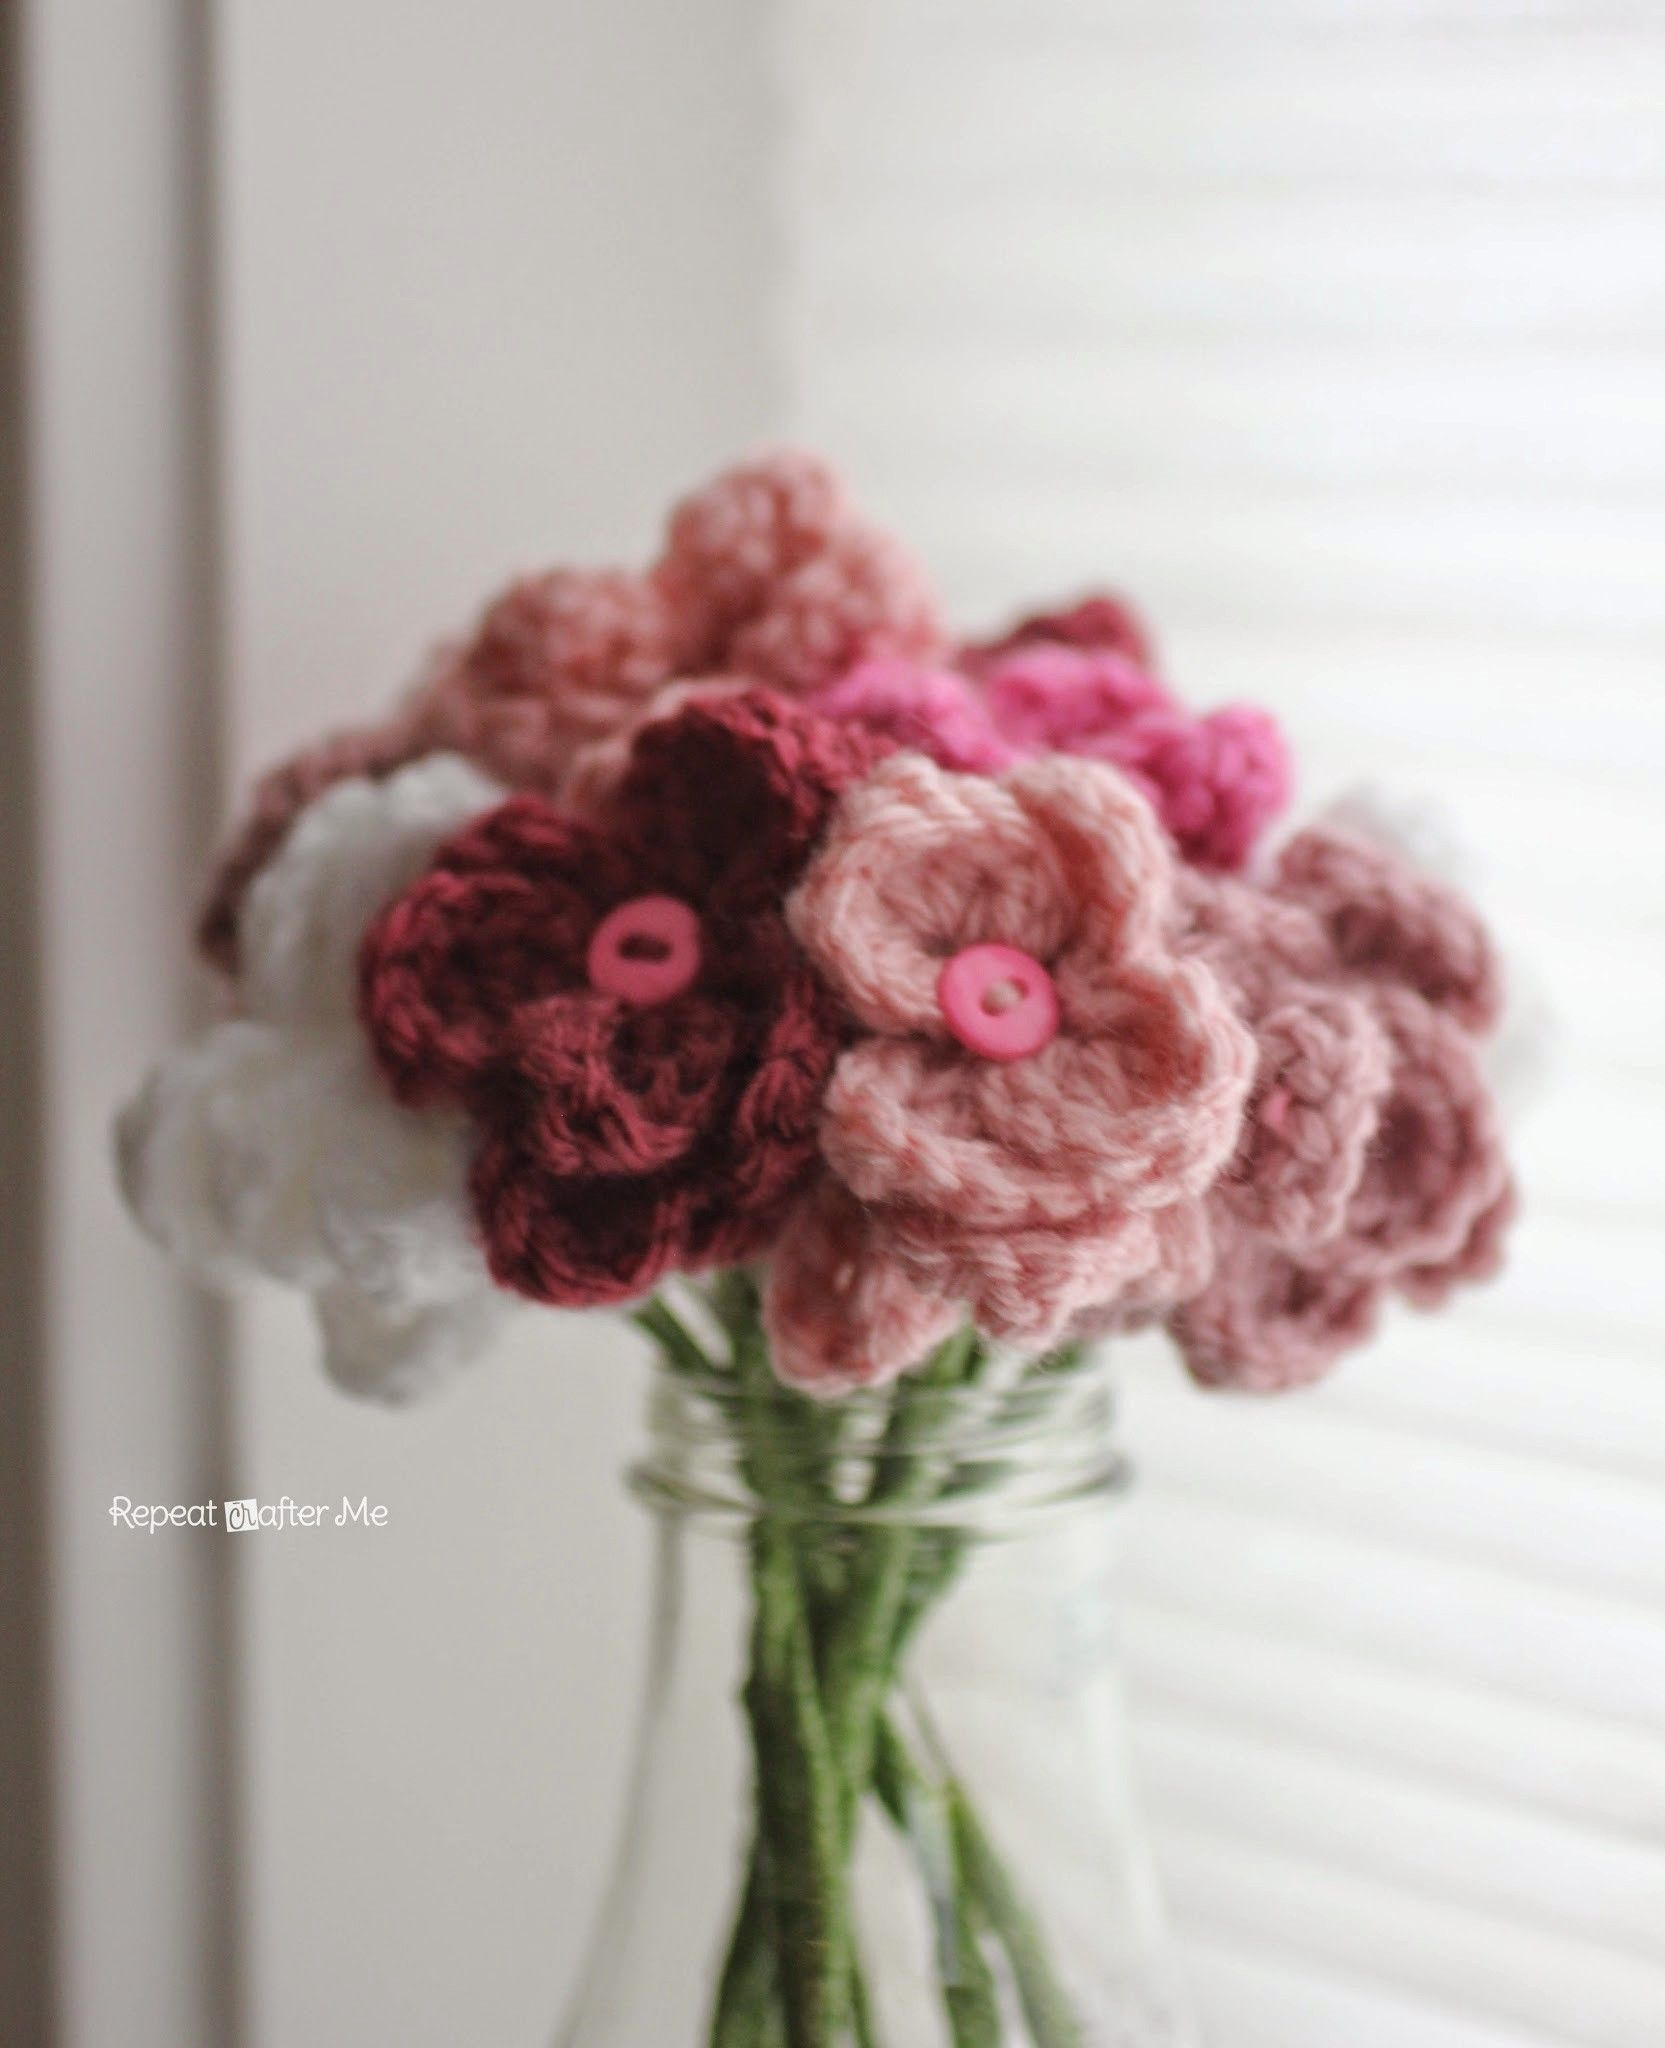 Repeat crafter me crochet flower bouquet crochet para el hogar repeat crafter me crochet flower bouquet izmirmasajfo